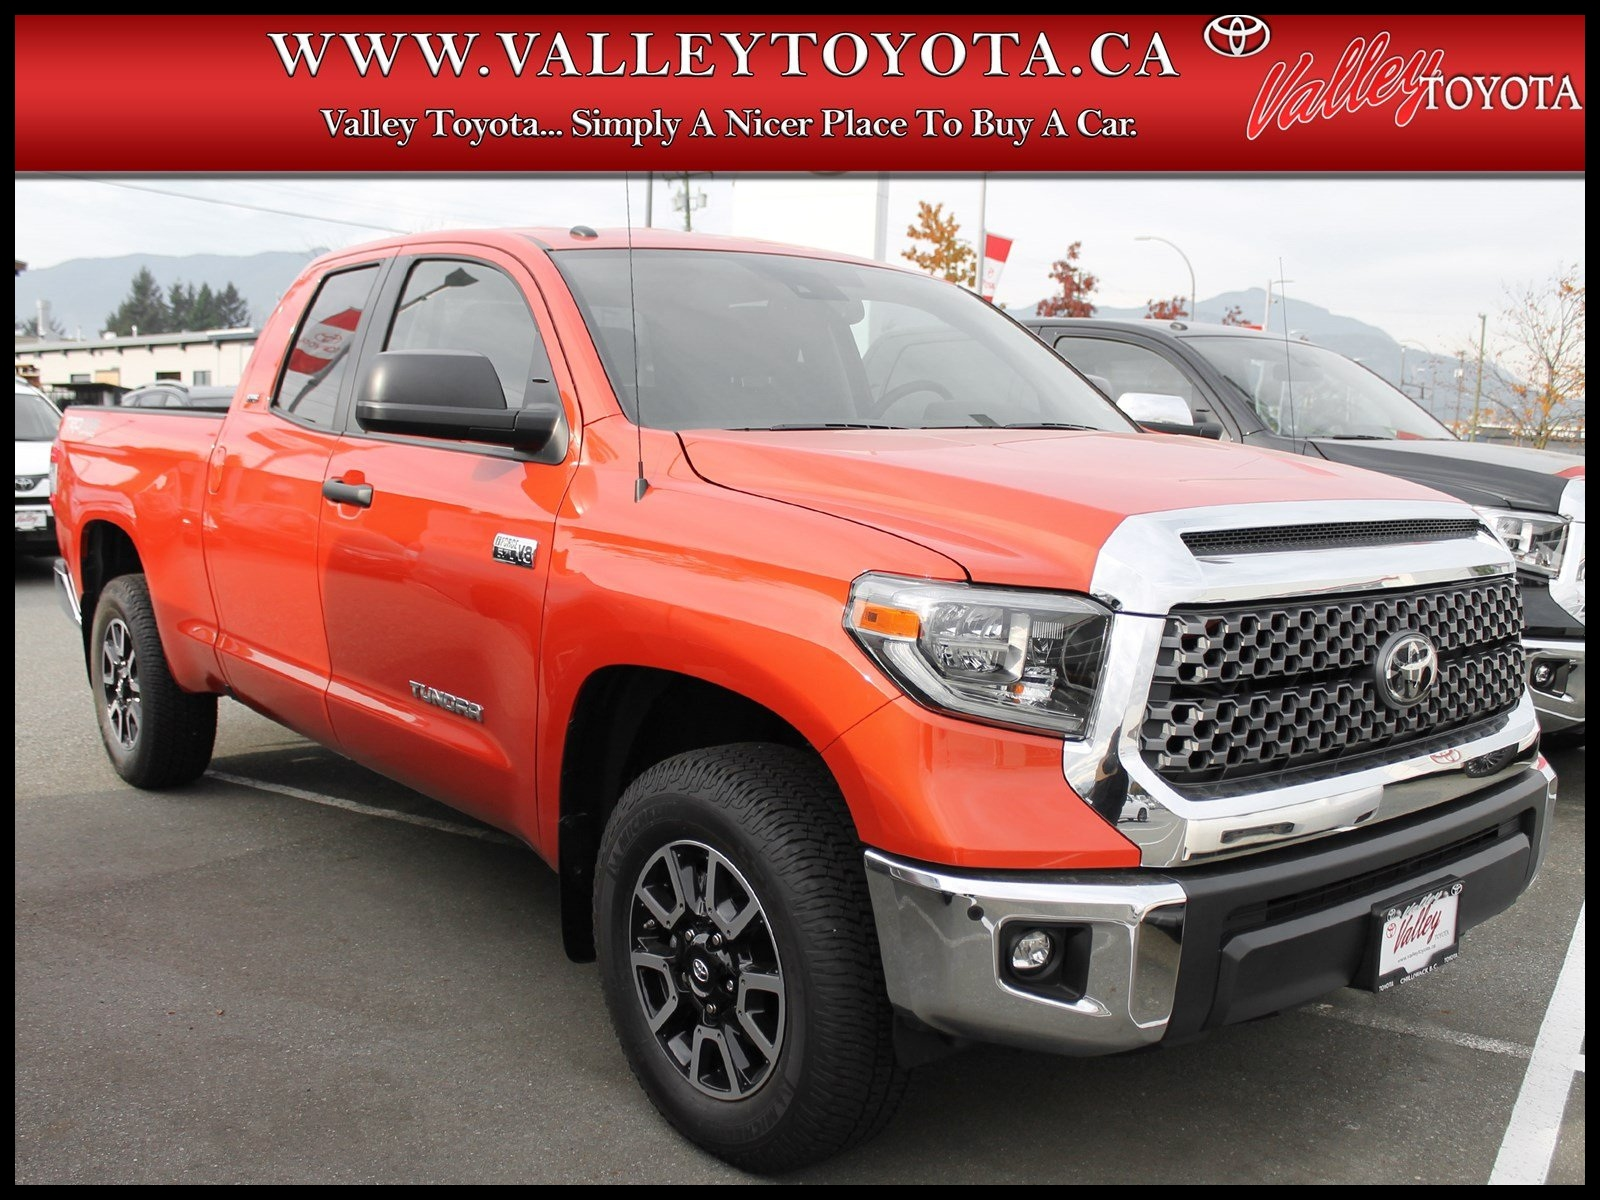 News New 2018 toyota Tundra Trd F Road Double Cab In Chilliwack Review Specs and